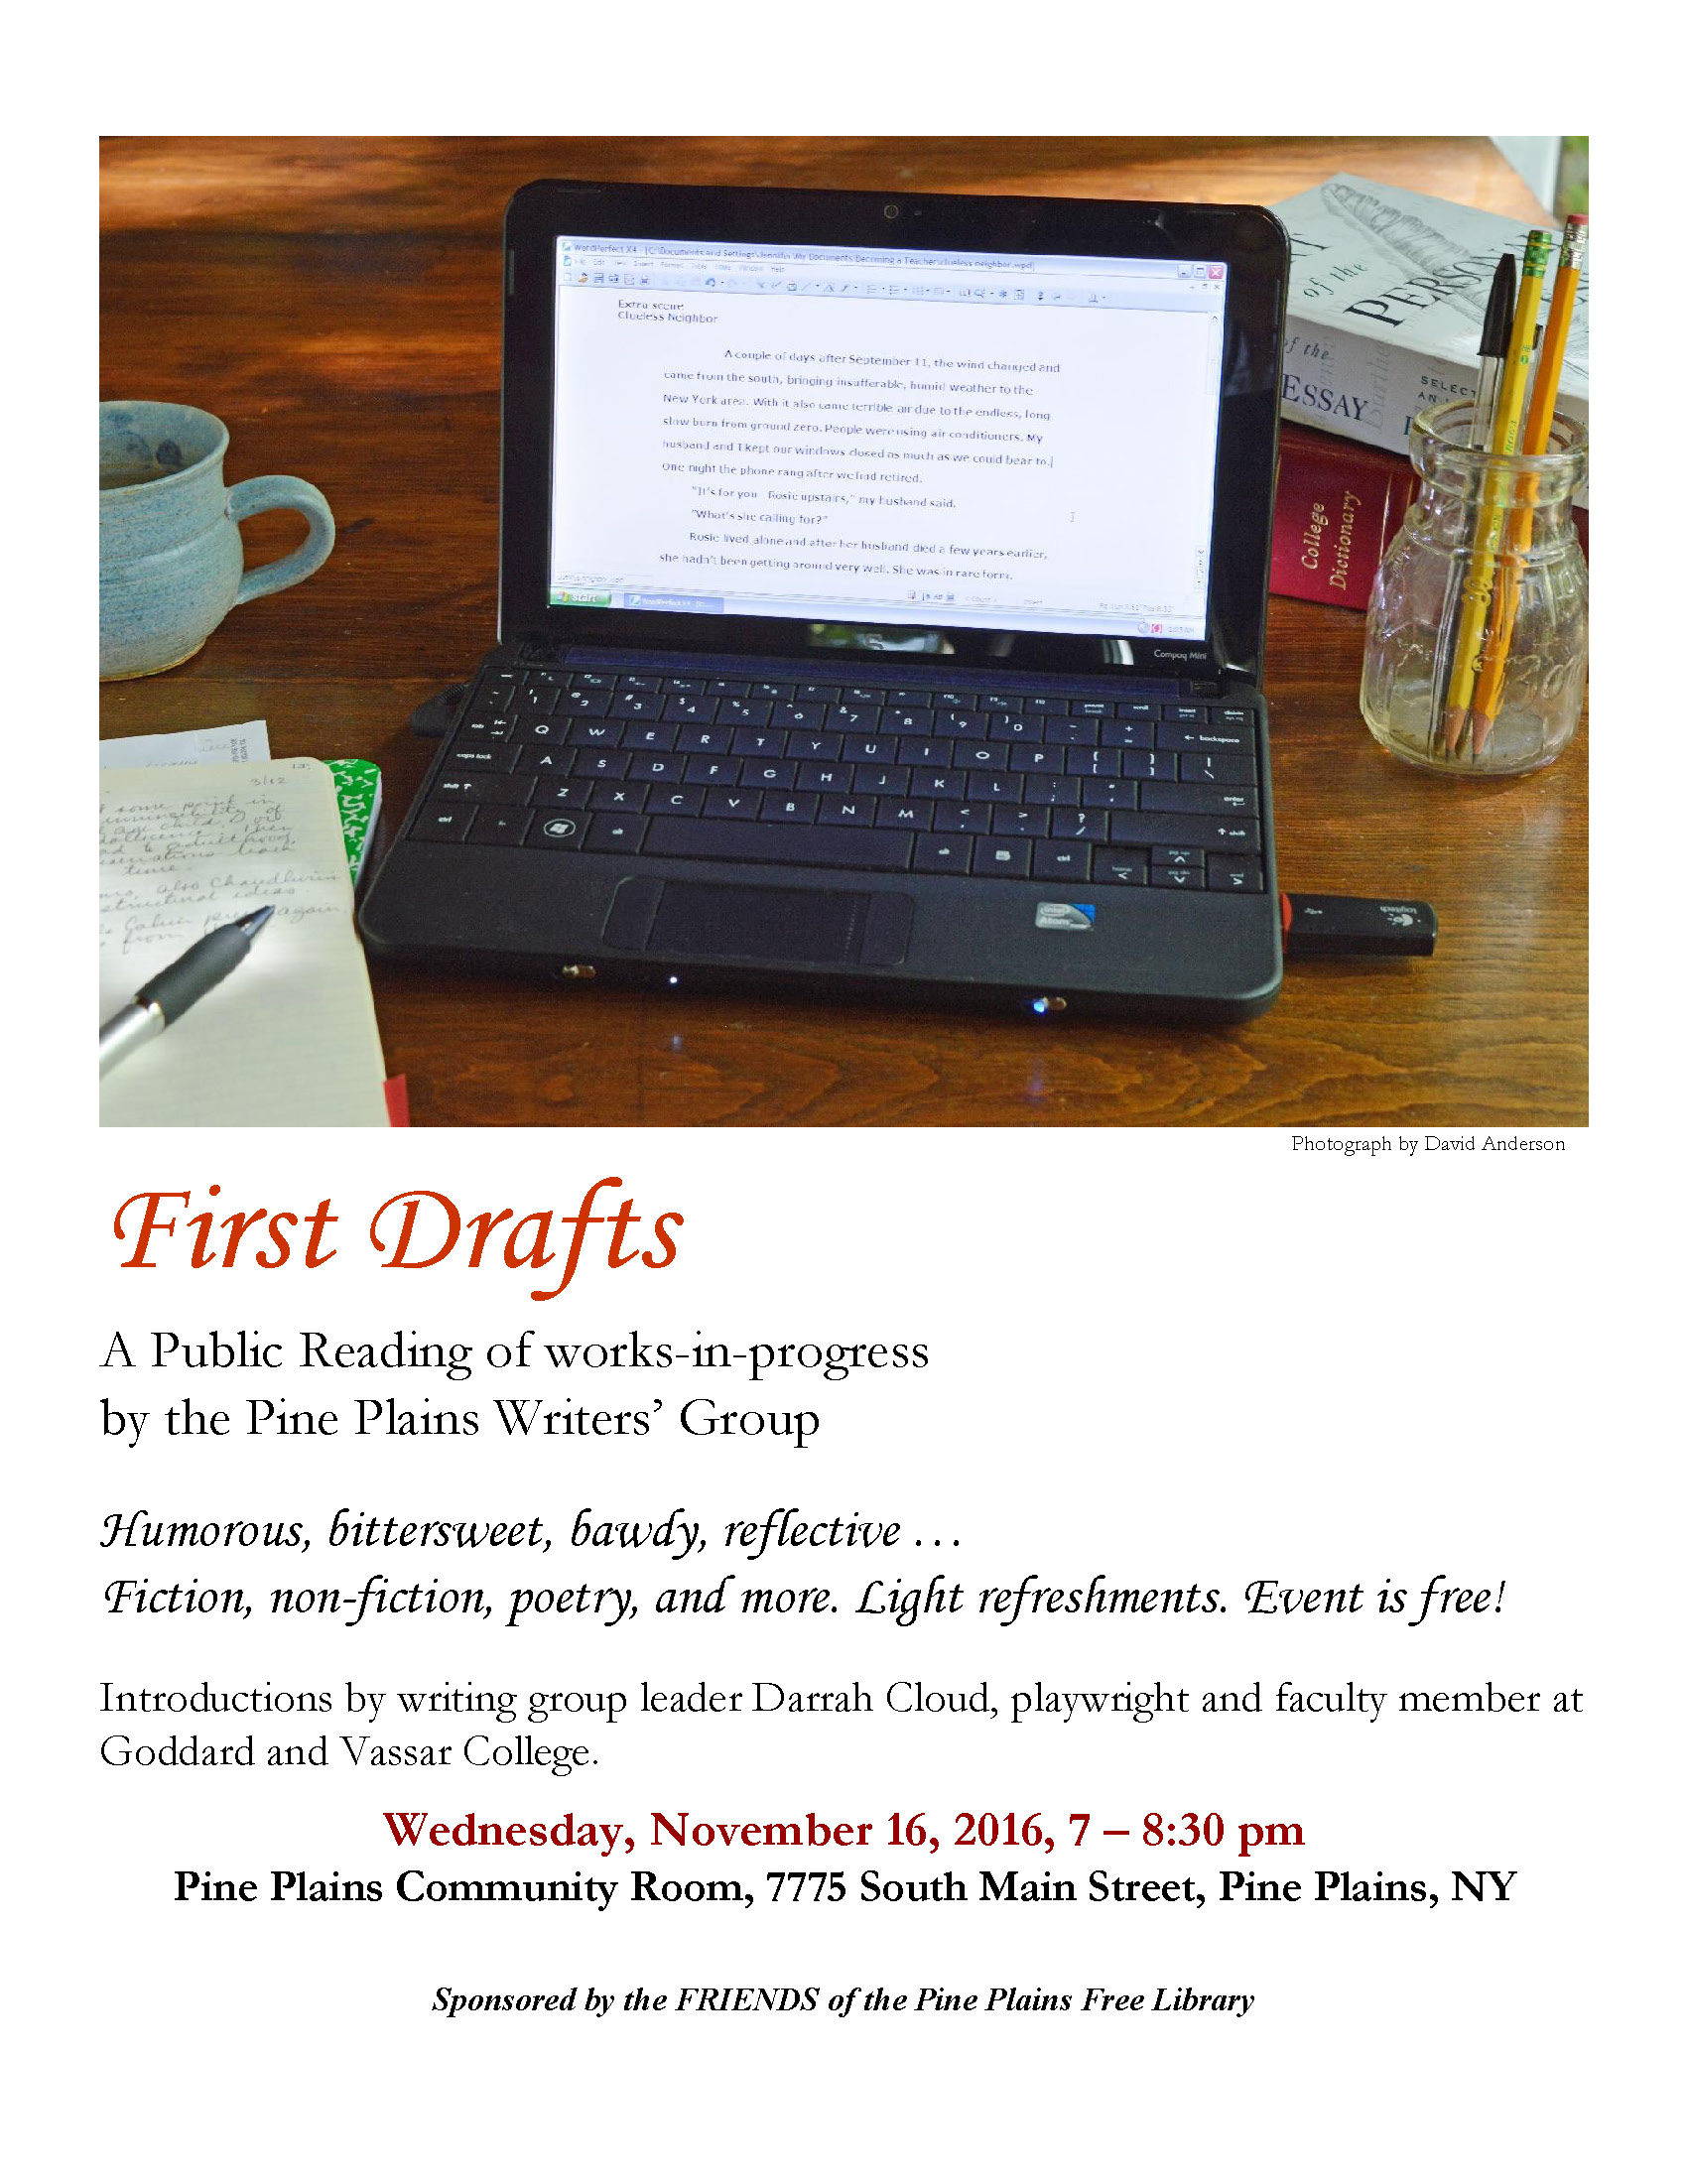 first-drafts-poster-public-reading-9-26-16